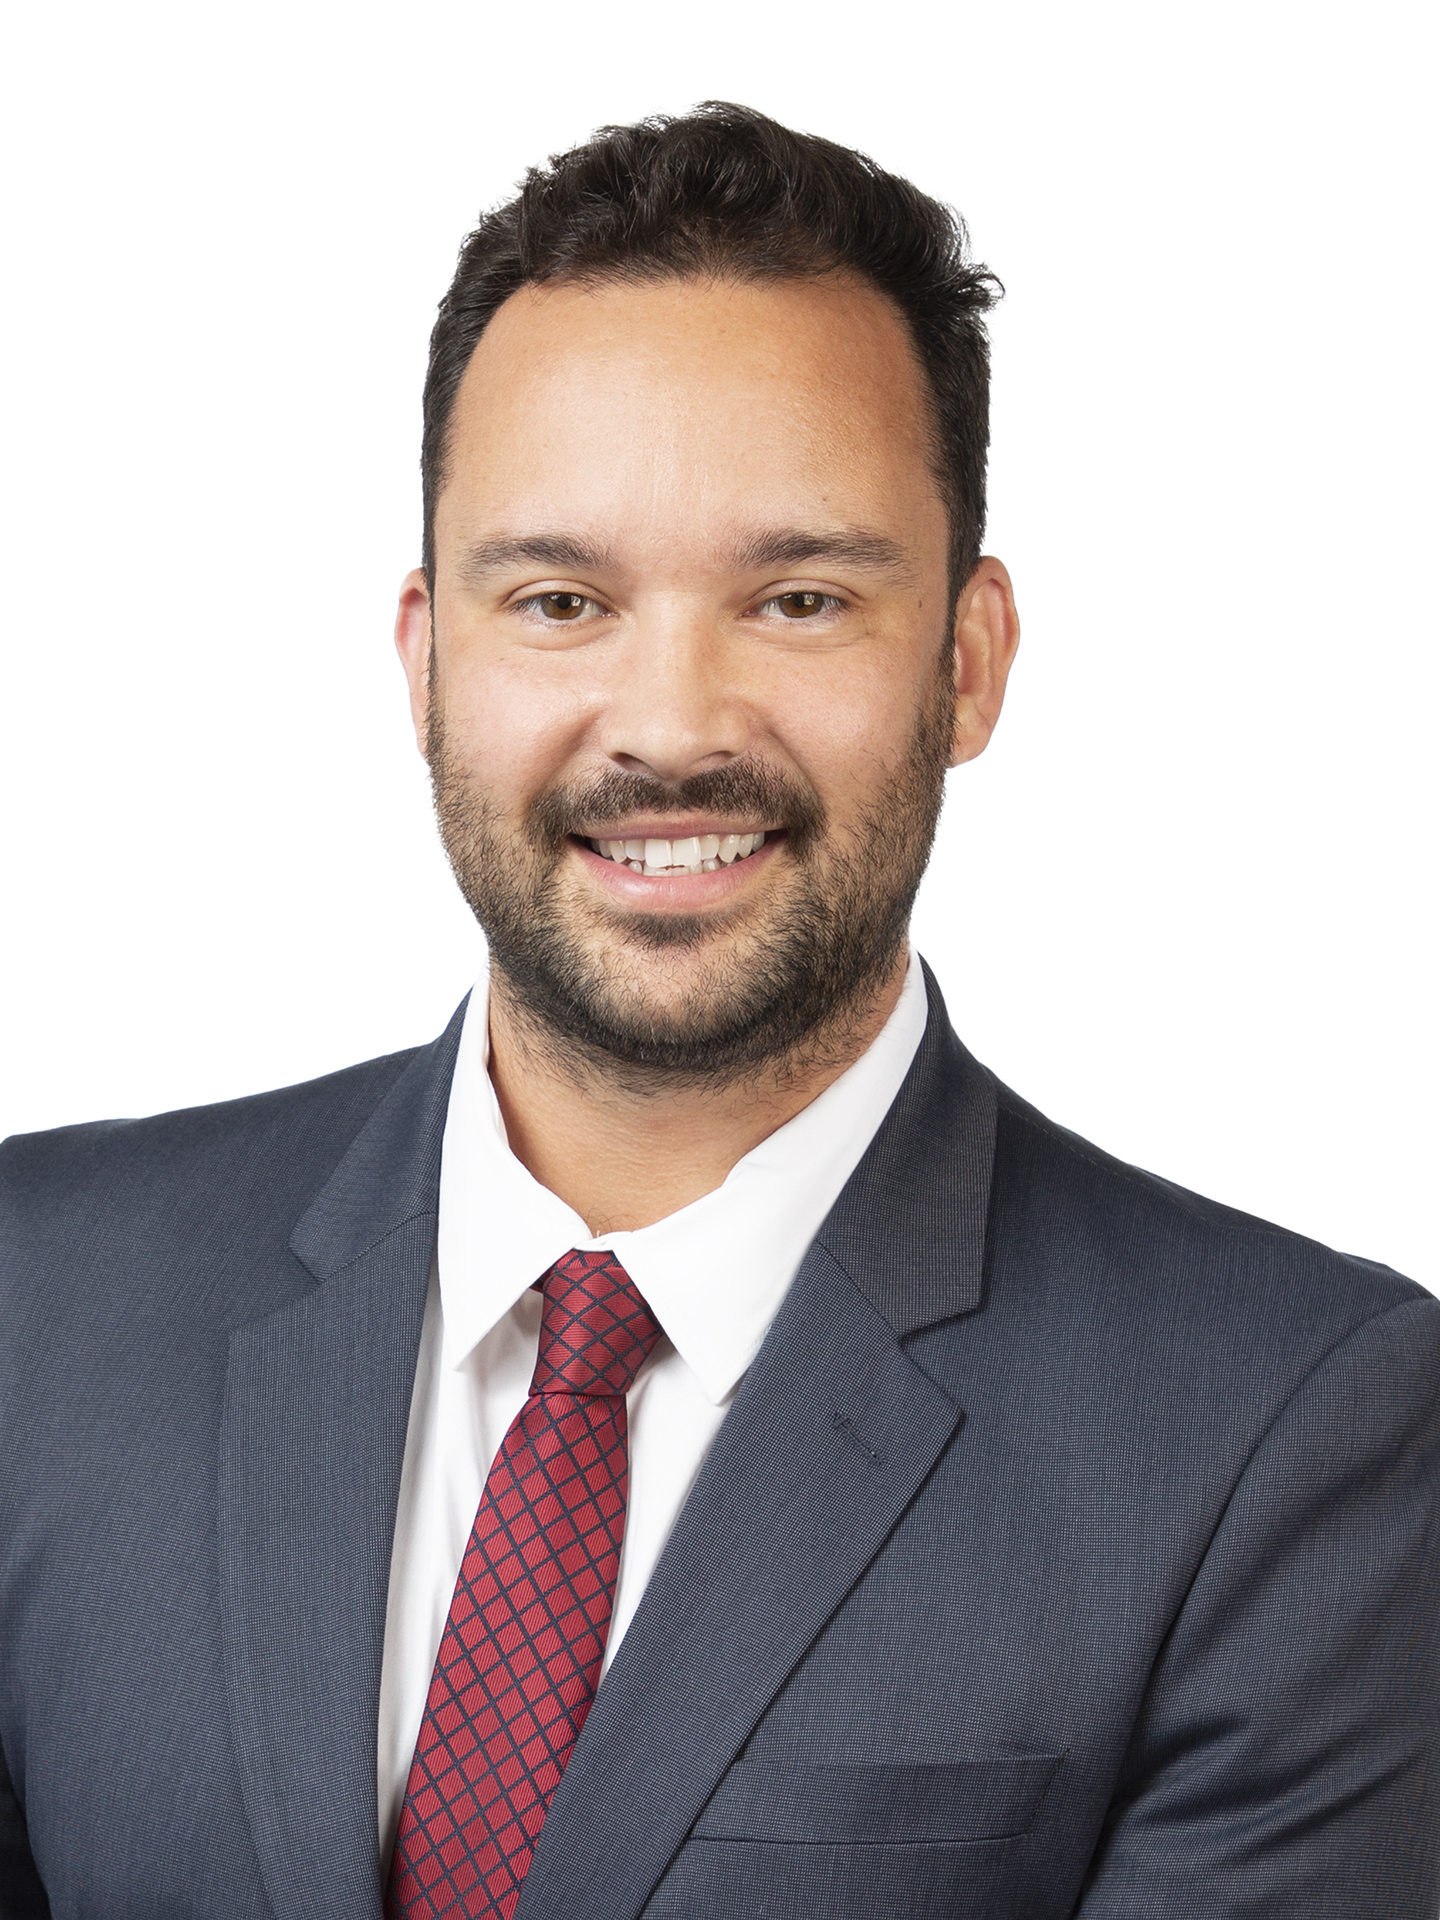 David was an outstanding selling agent for us and kept up a positive and enthusiastic effort during tough market conditions.